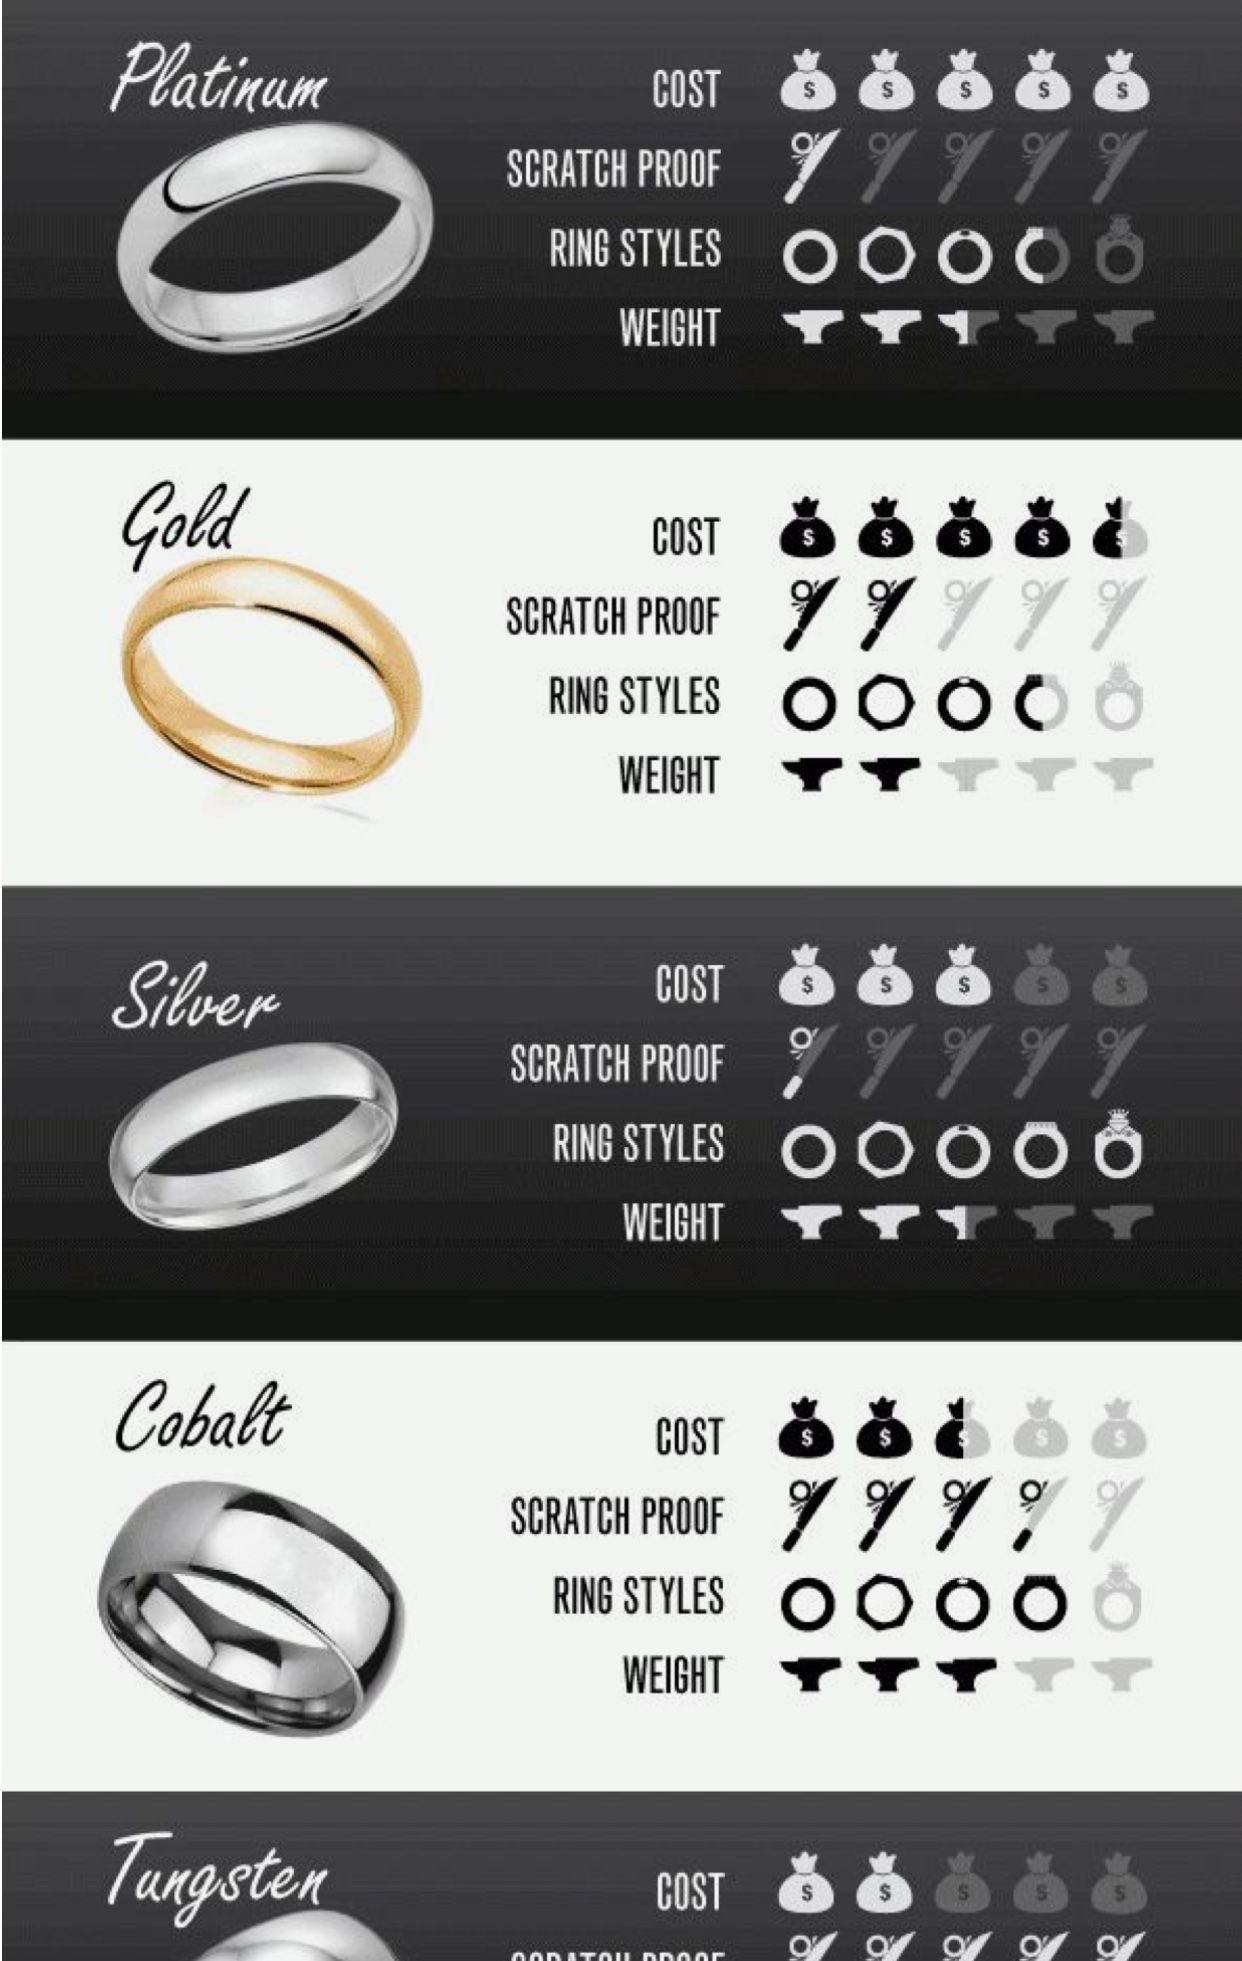 It is just a graphic of I picked out, ordered and paid for his wedding band today! As well